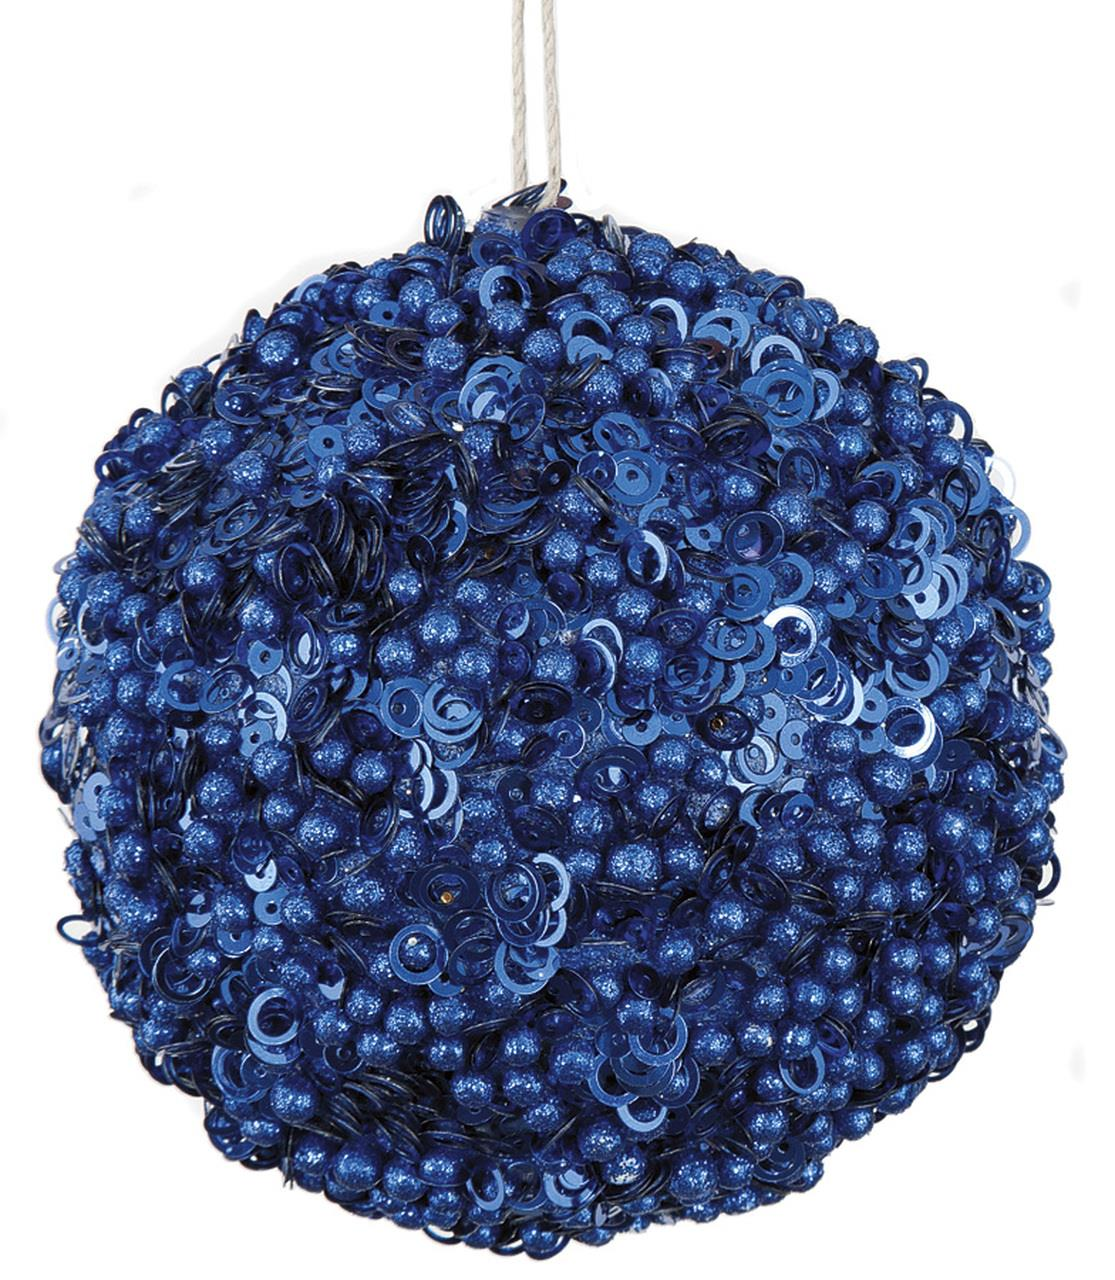 Dark Blue Glitter Ball Ornament - 6'